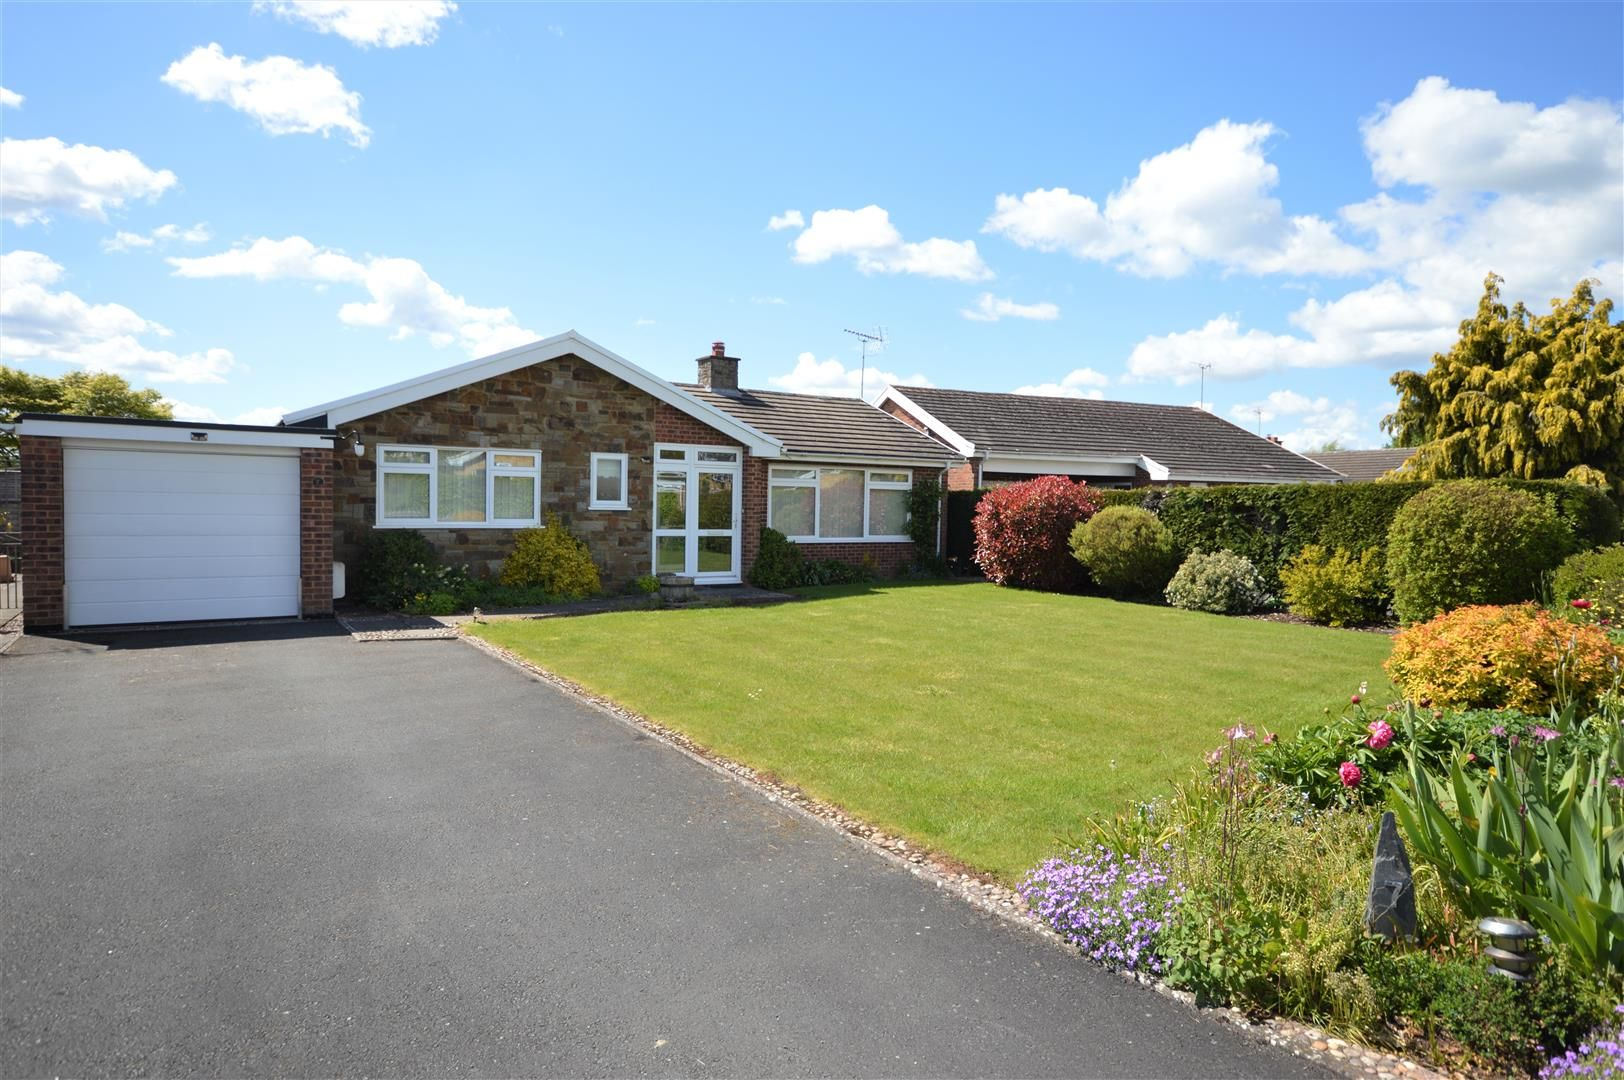 3 bed detached bungalow for sale in Bodenham  - Property Image 1